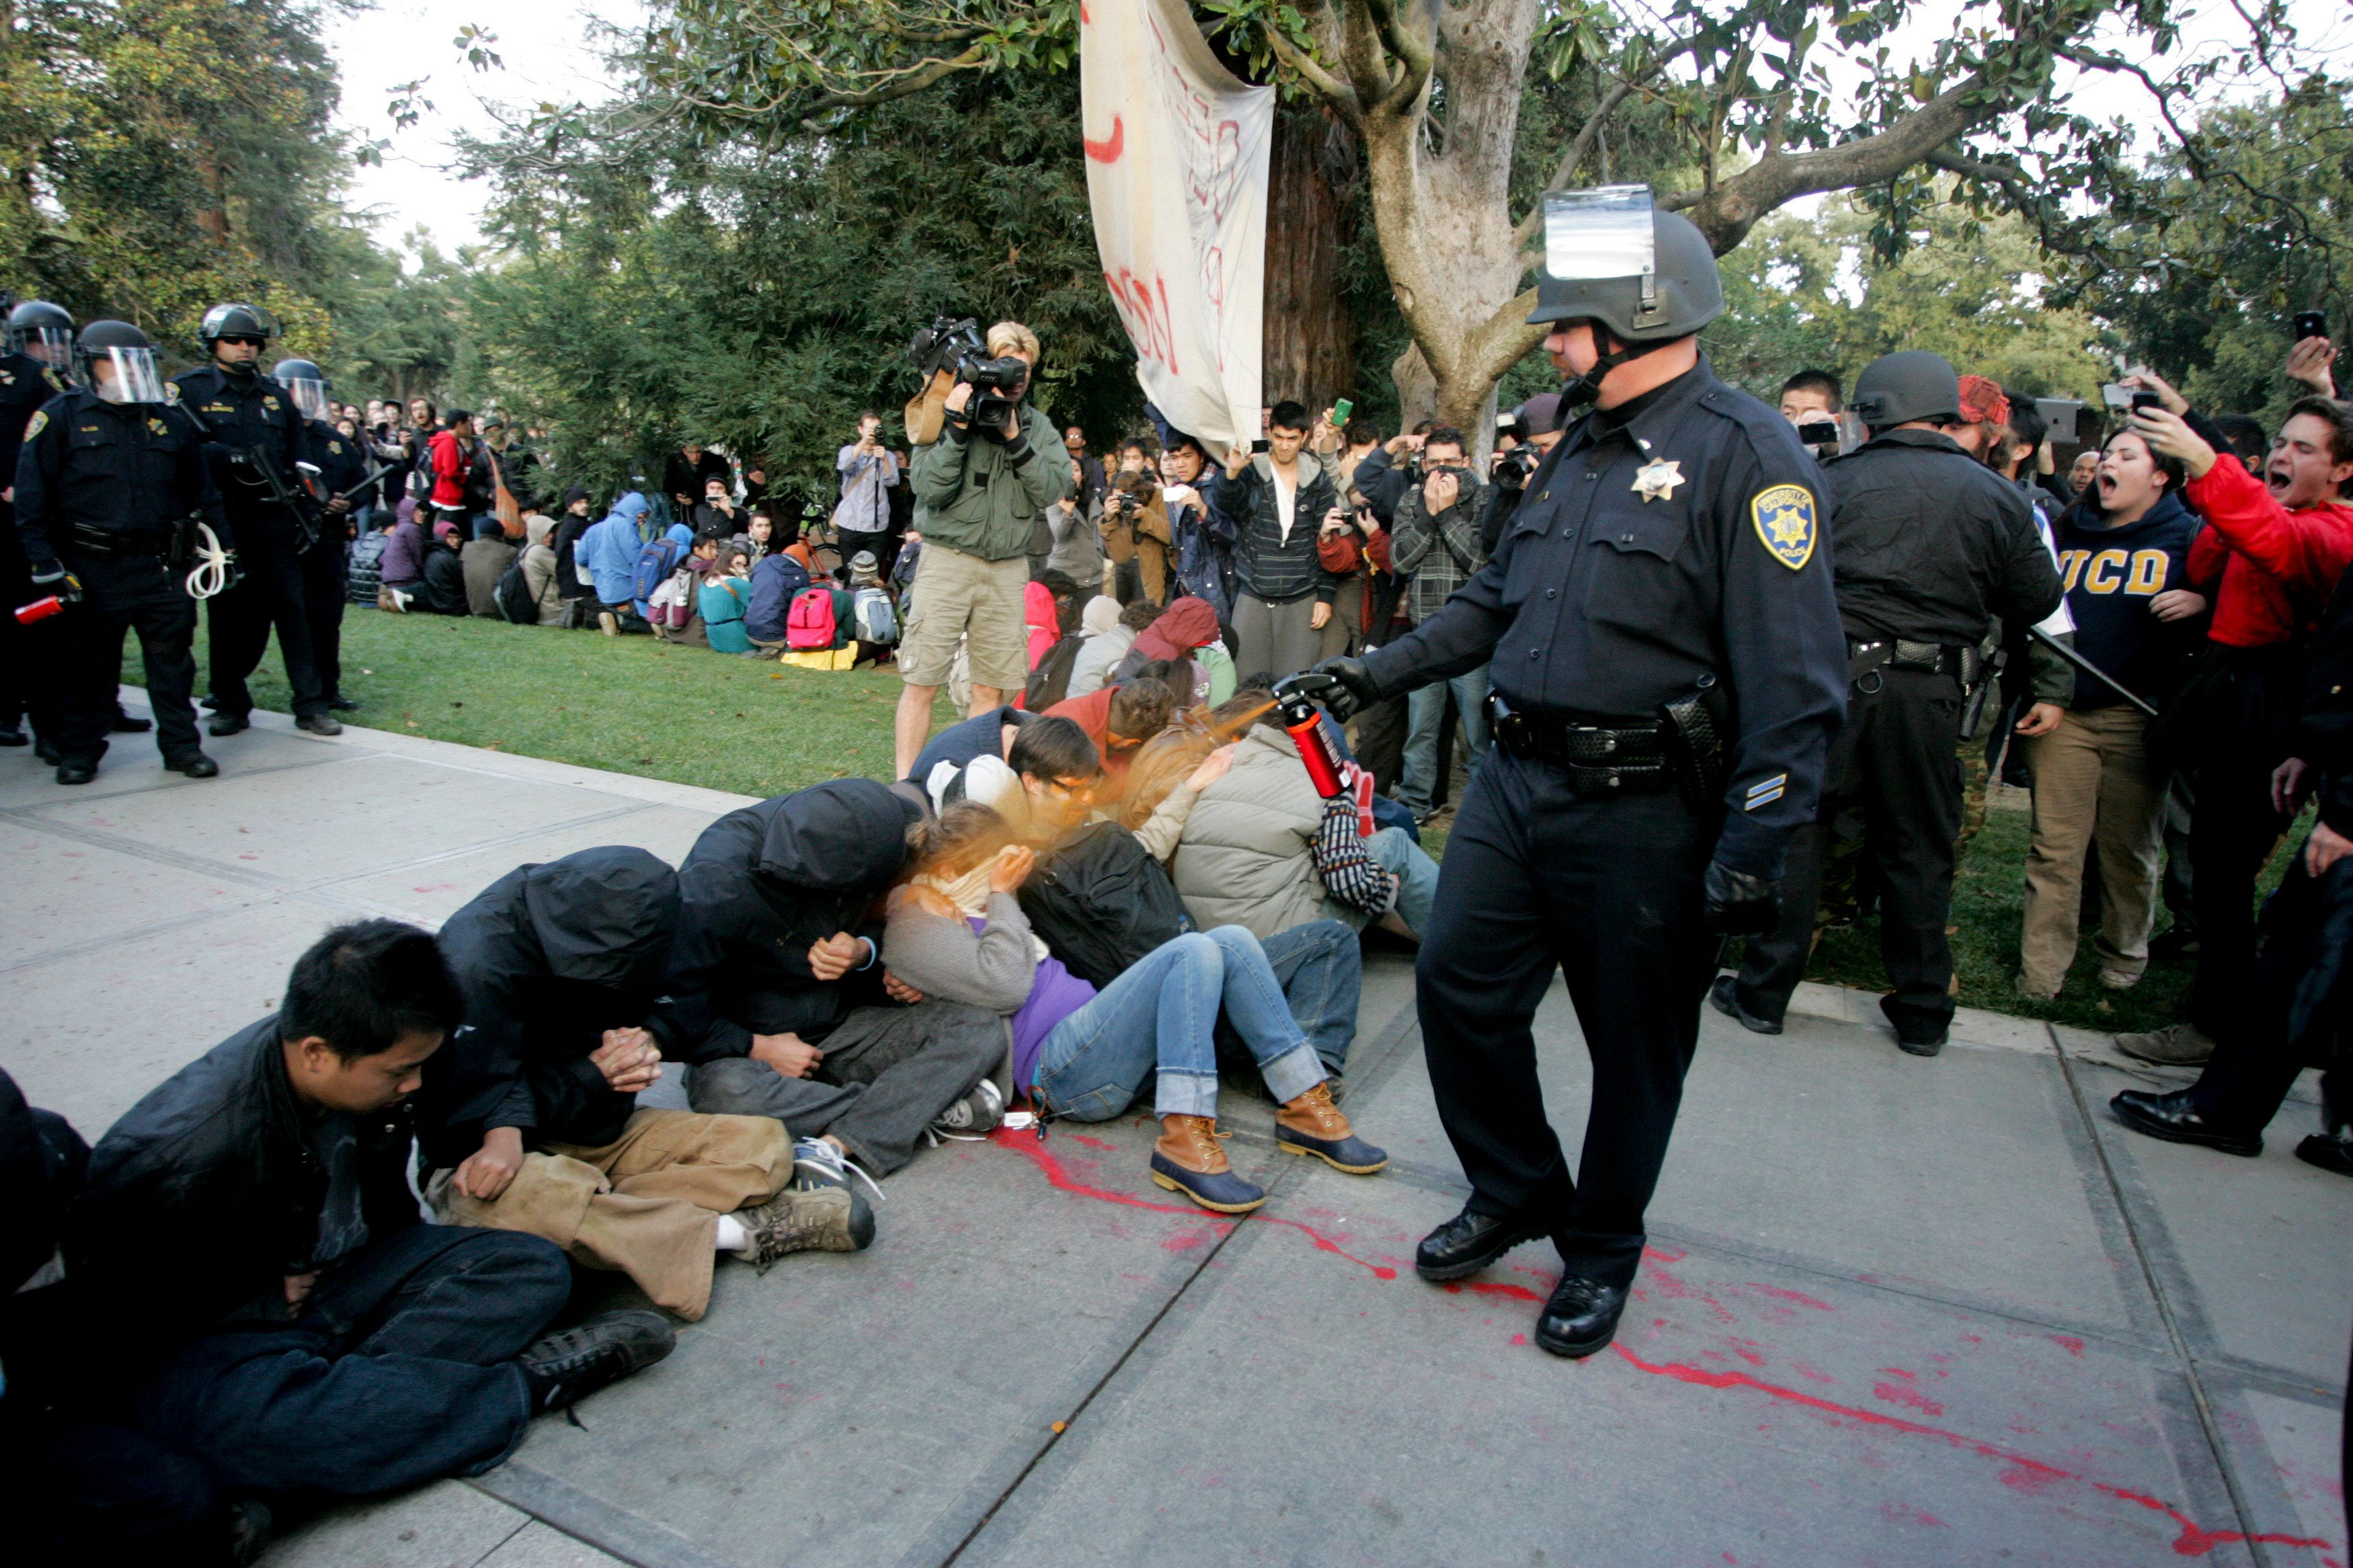 570fc9aa2200003600253887?ops=1910_1000 uc davis wants you to forget about its pepper spray incident so